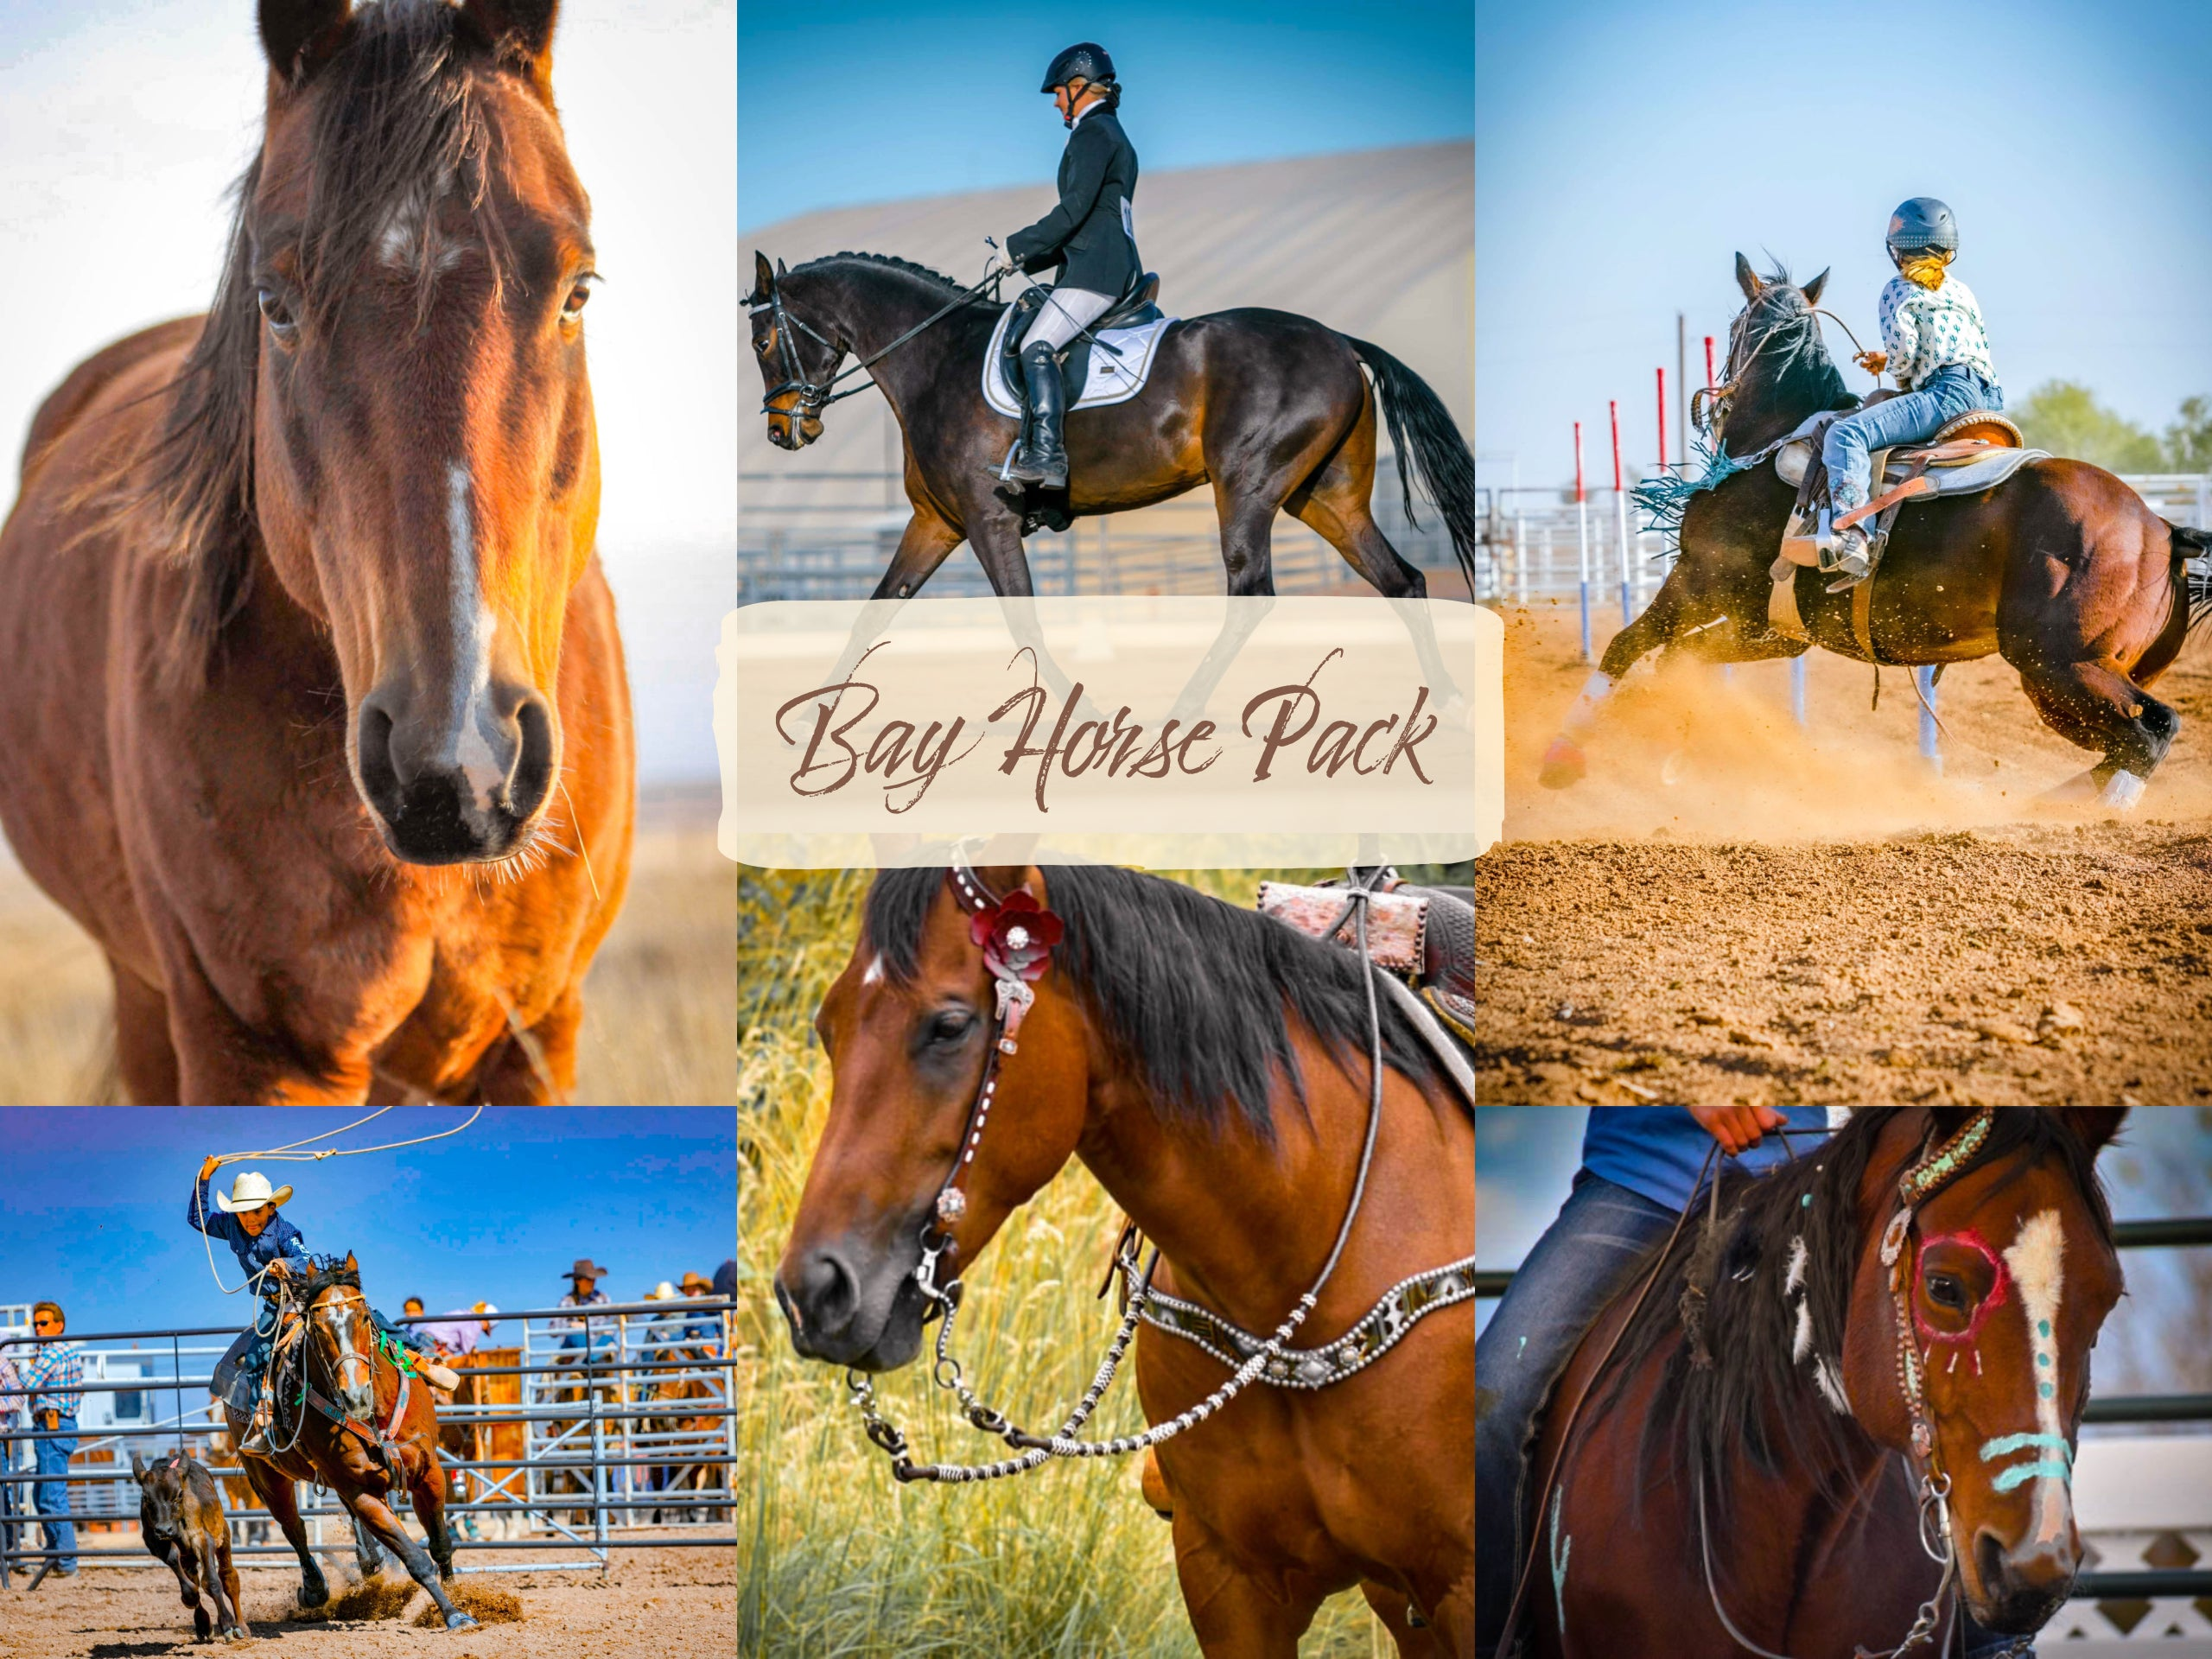 Bay Horse Pack